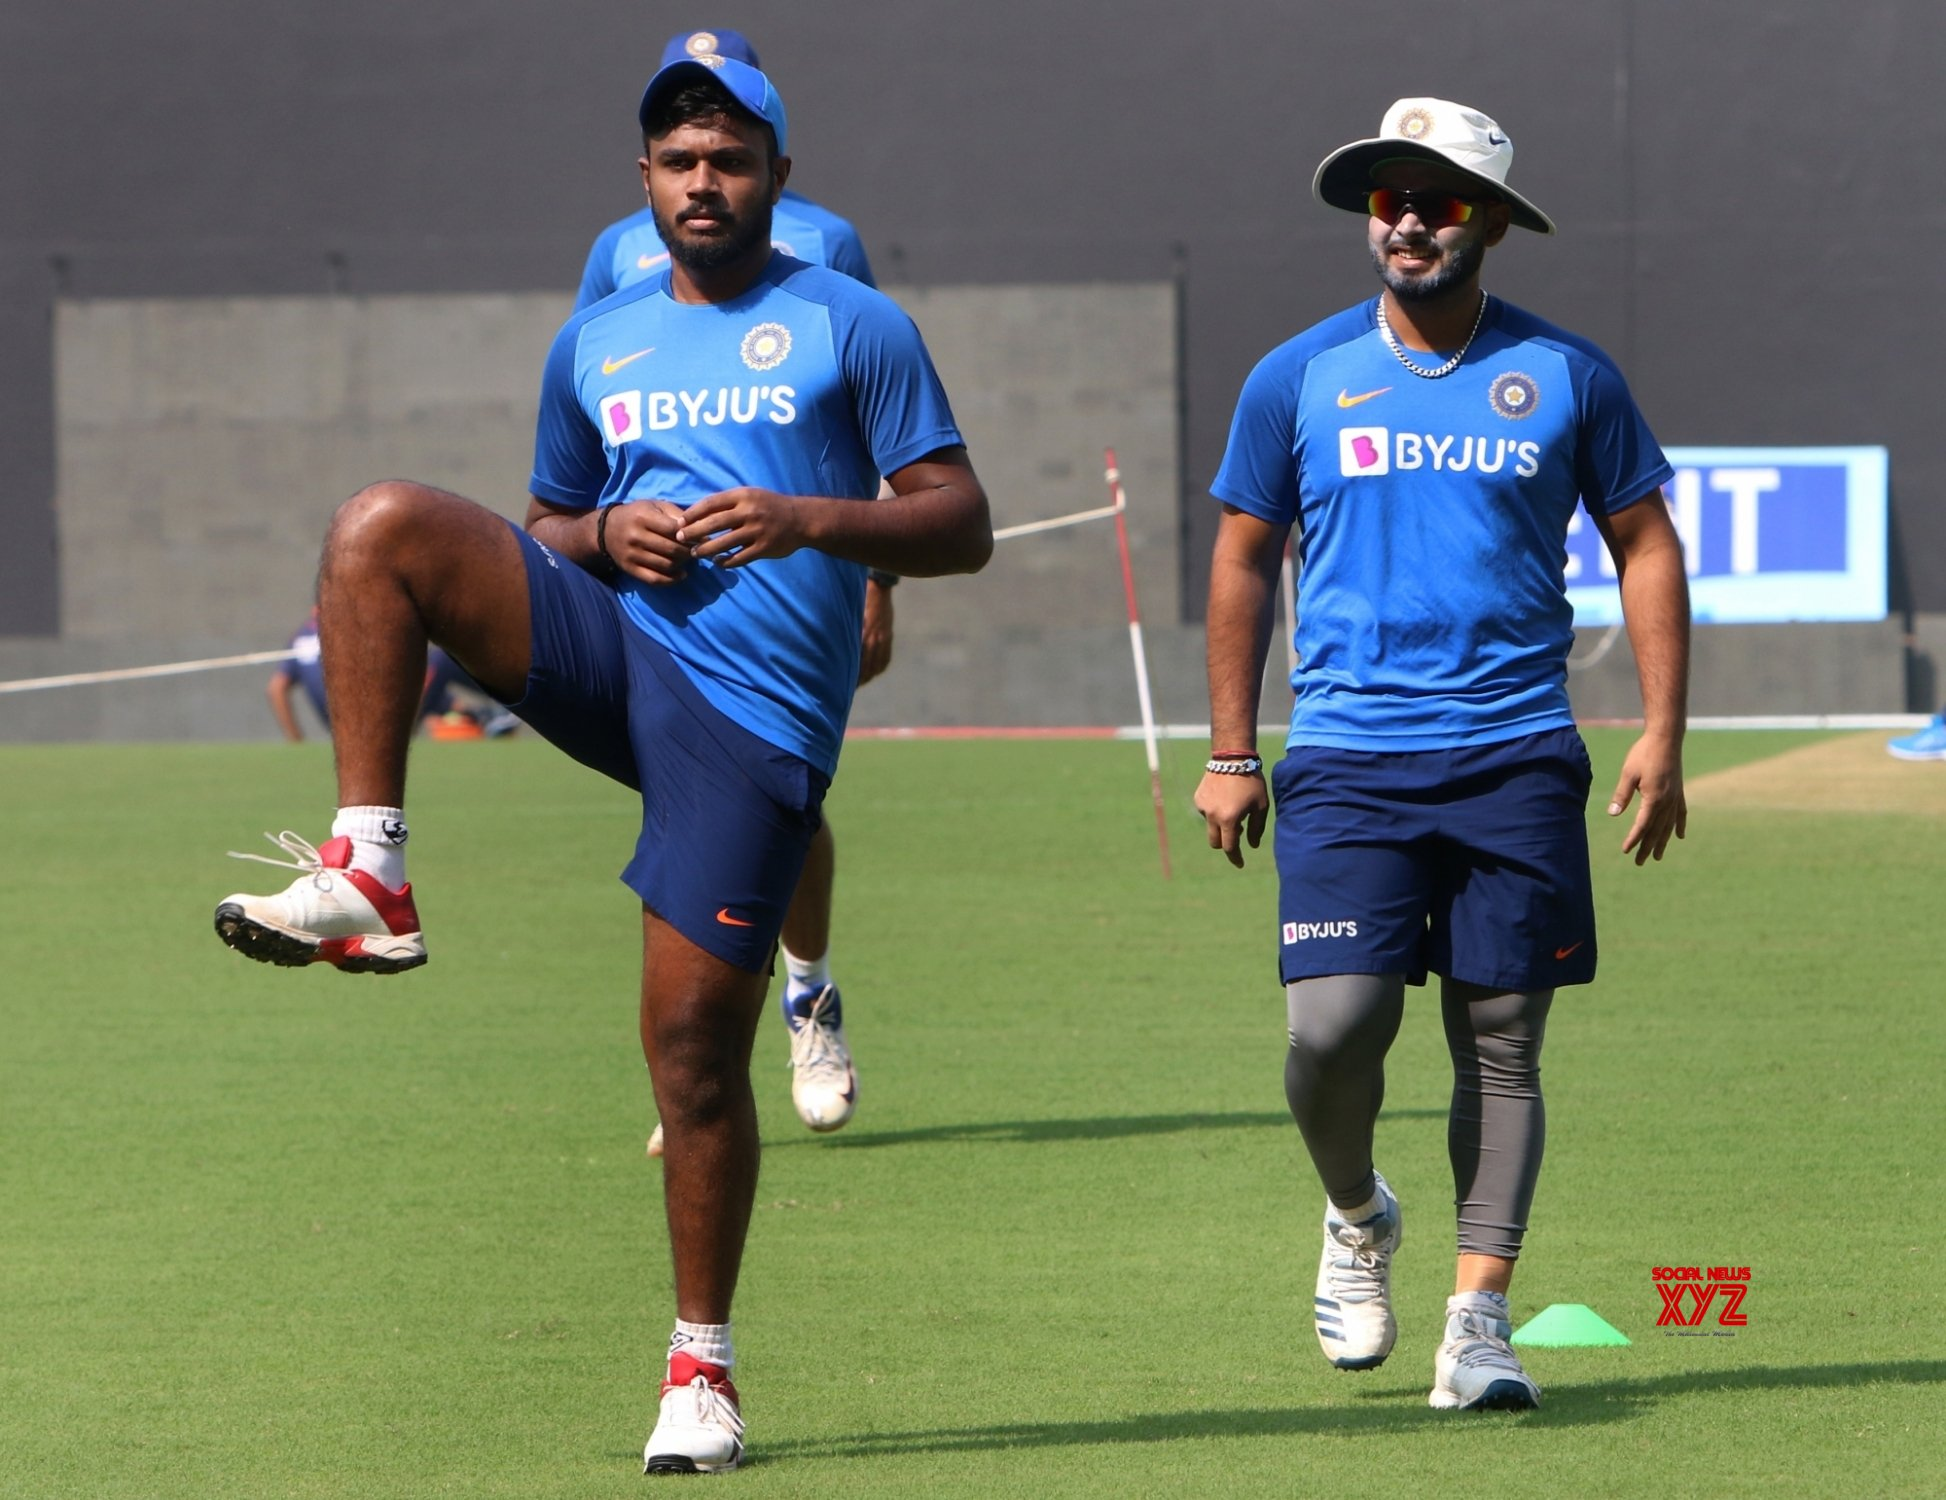 Nagpur: India practice session (Batch - 3) #Gallery